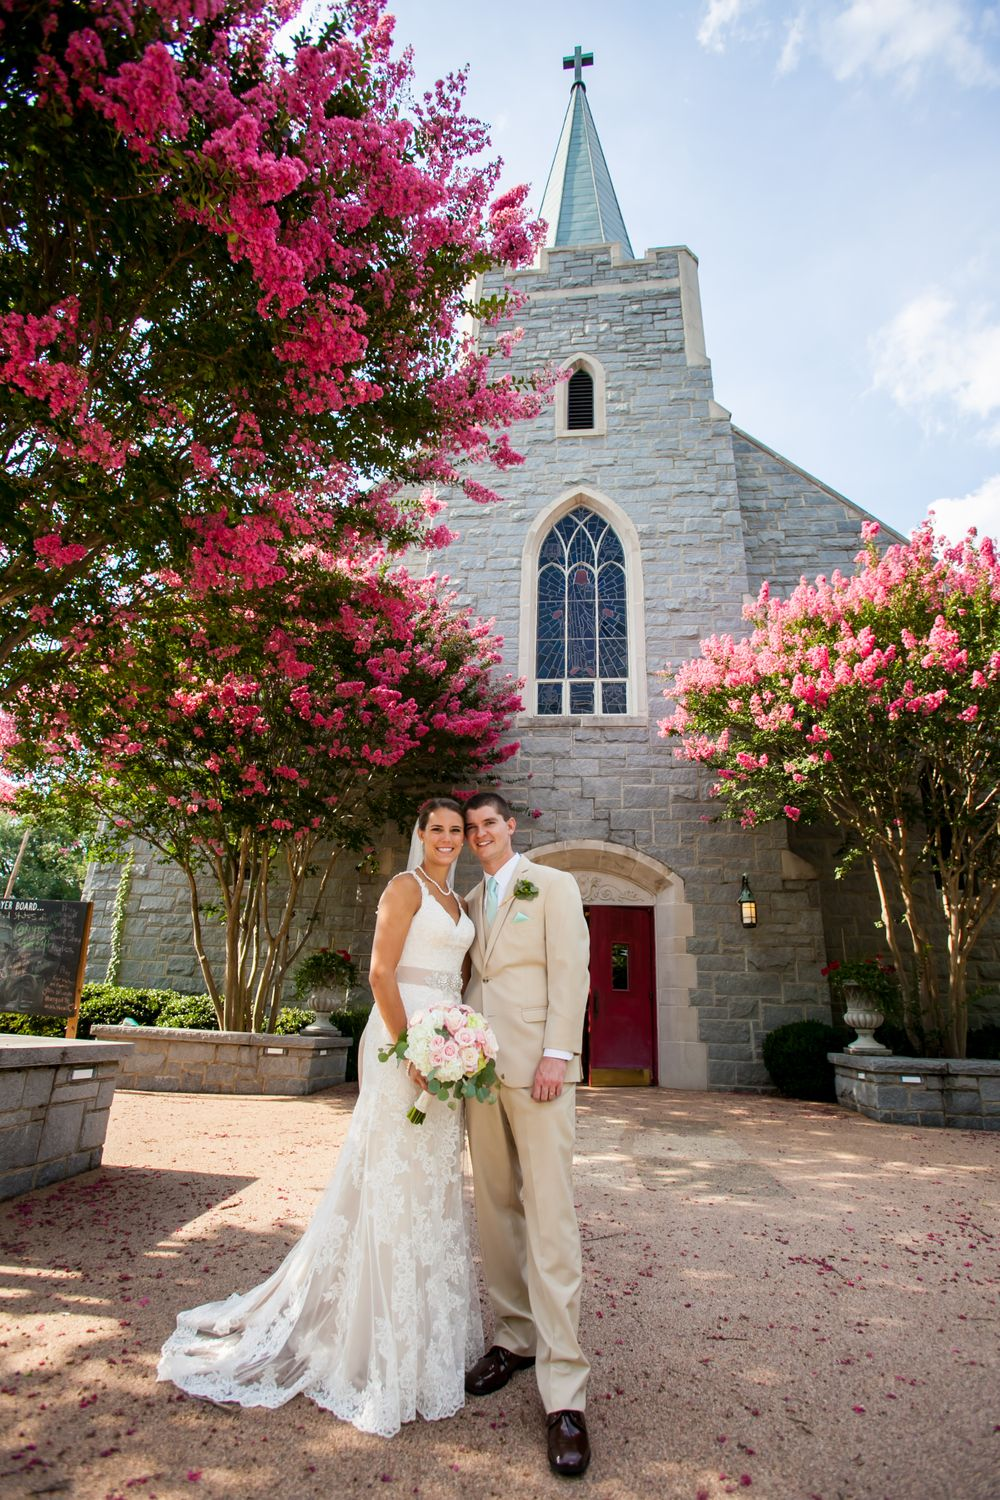 Alex & Michael kiss in front of Incarnation Lutheran Church after their wedding there in Columbia, SC.